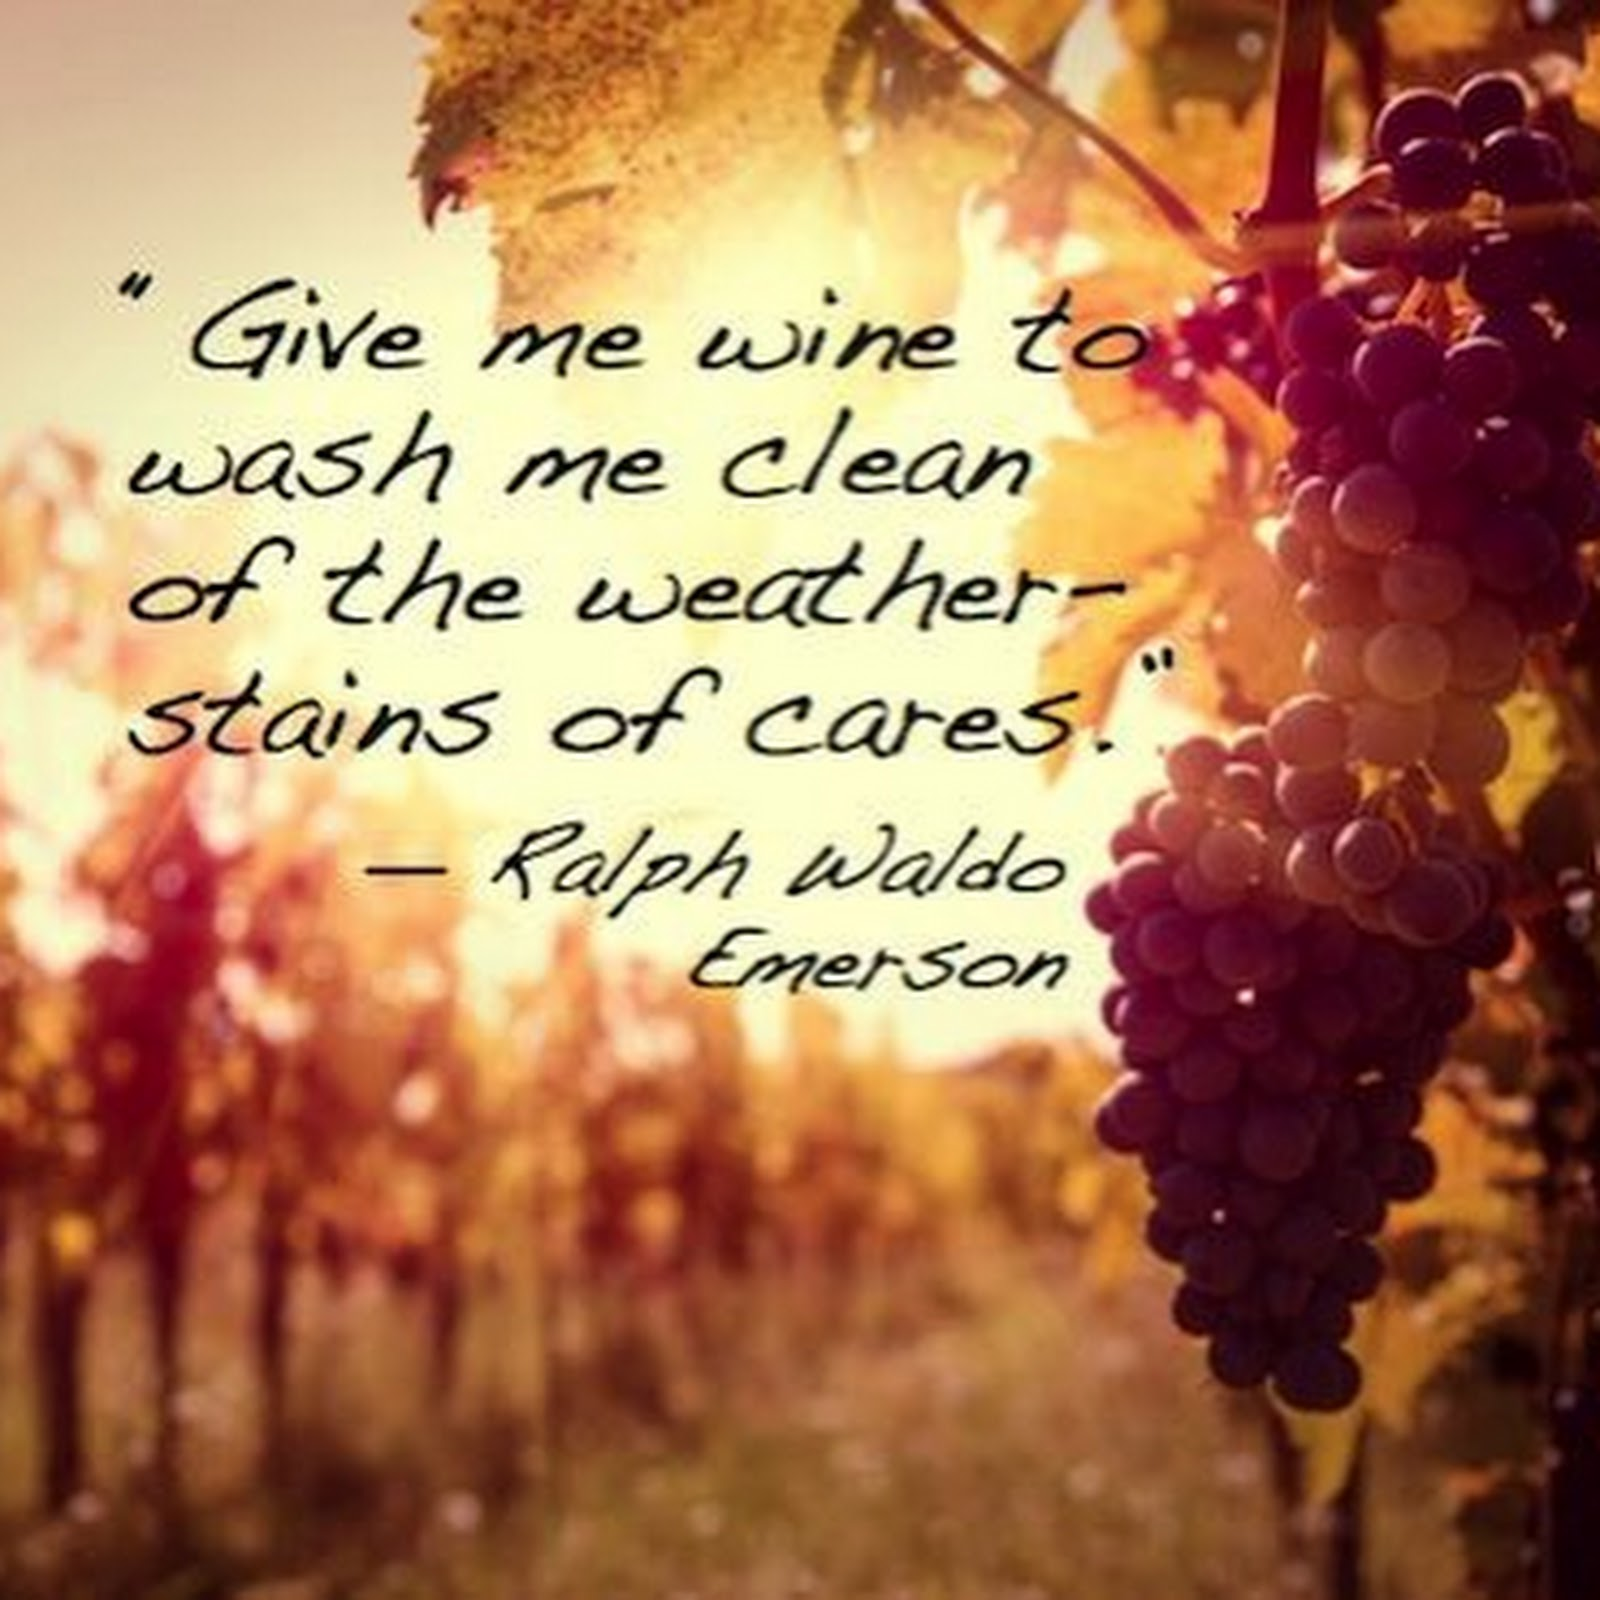 Wine Quote of the Week - Emerson